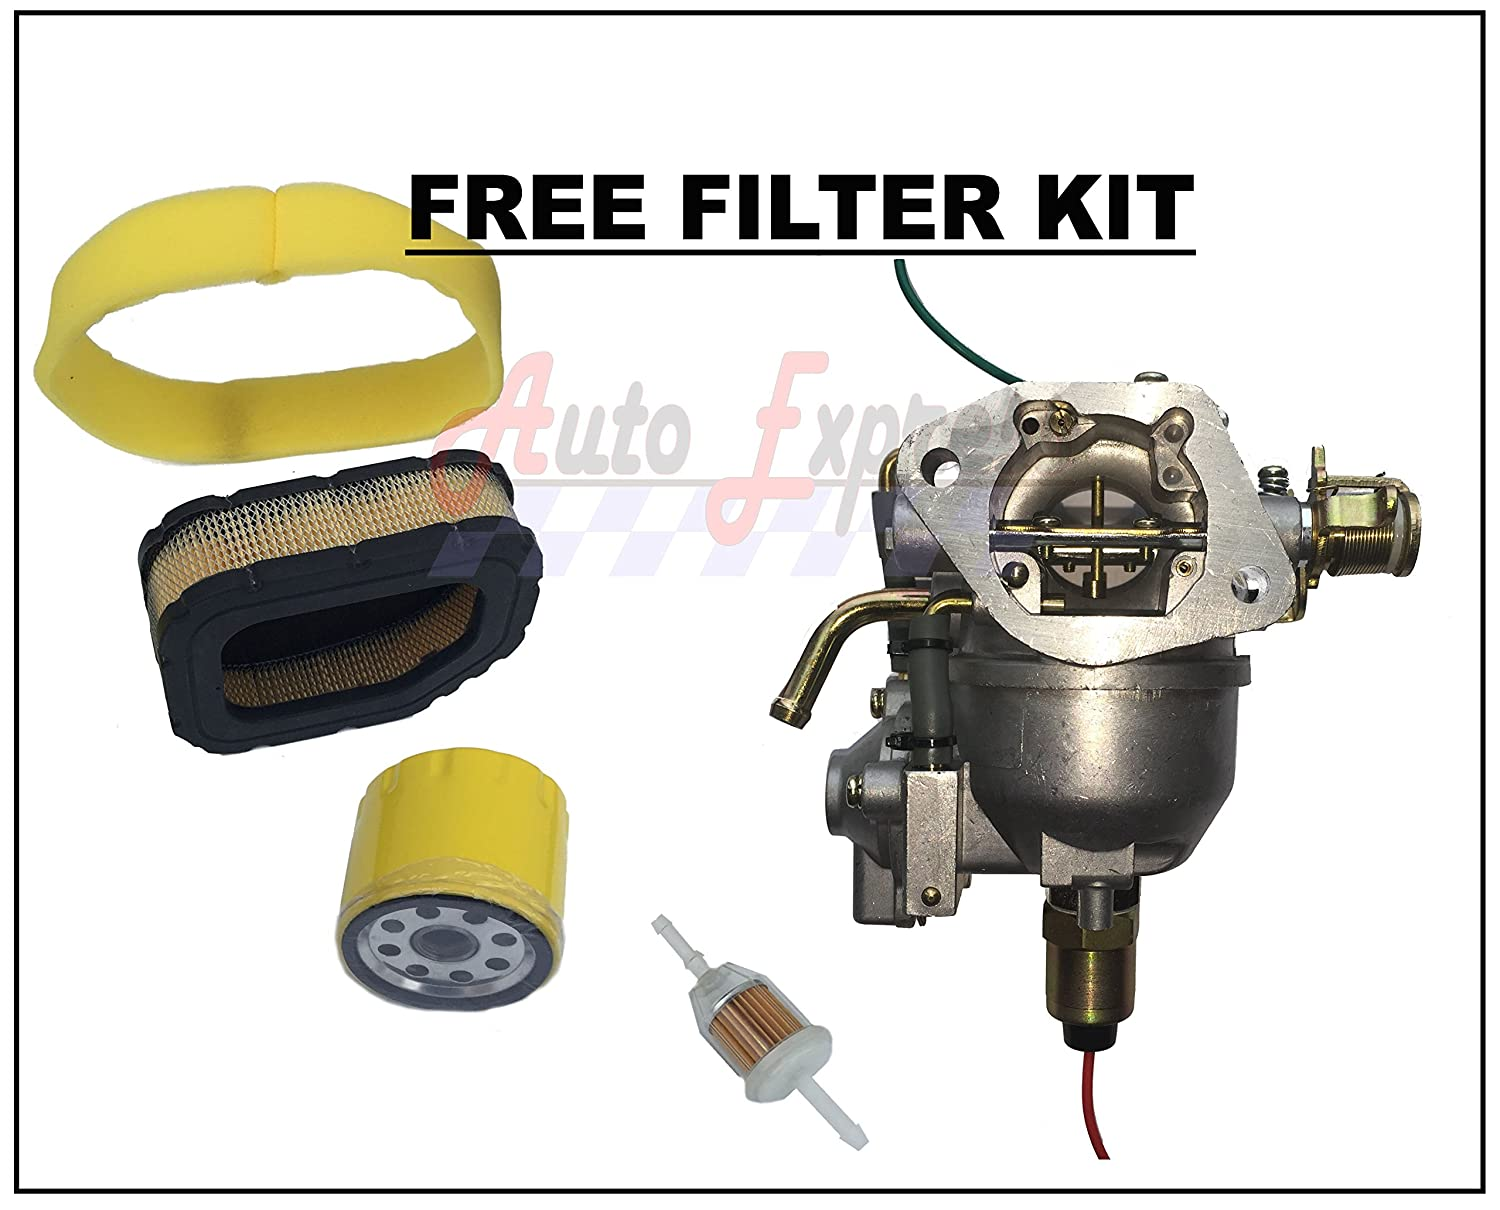 81WCl4RjBsL._SL1500_ amazon com carburetor fits john deere m655 m665 ztrak carb pump john deere m655 parts diagram at eliteediting.co